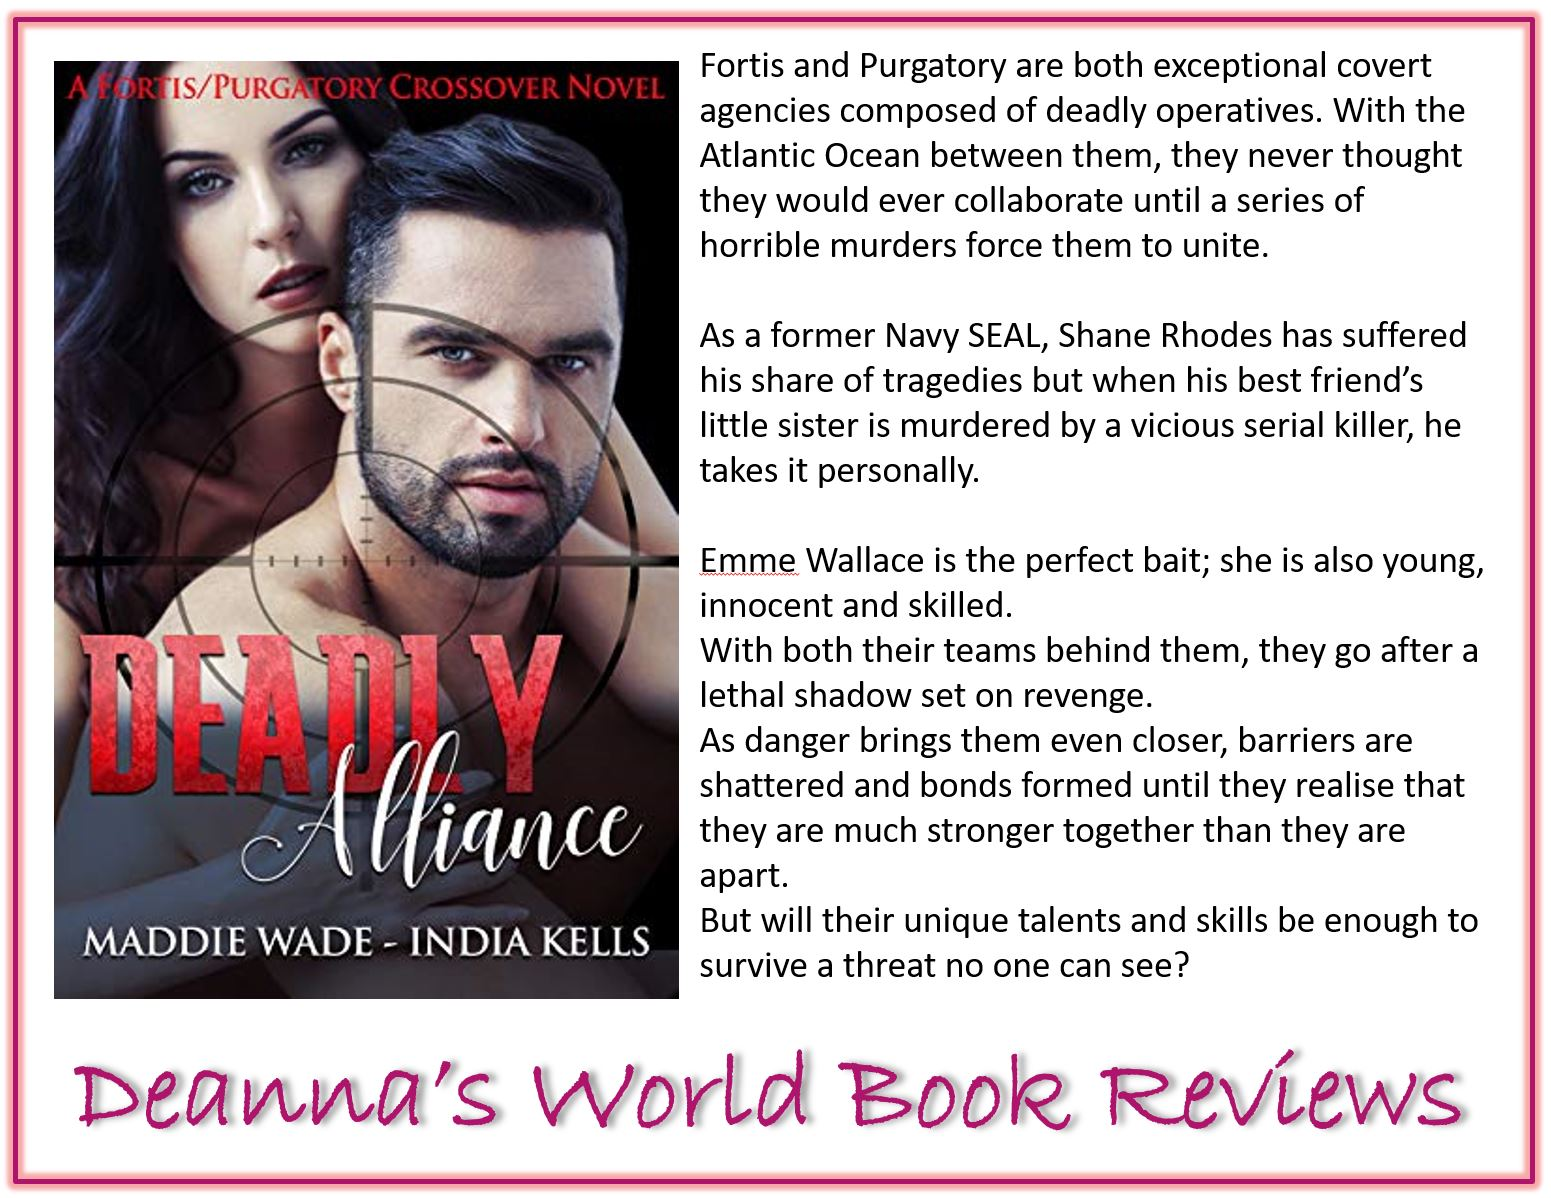 Deadly Alliance by Maddie Wade and India Kells blurb